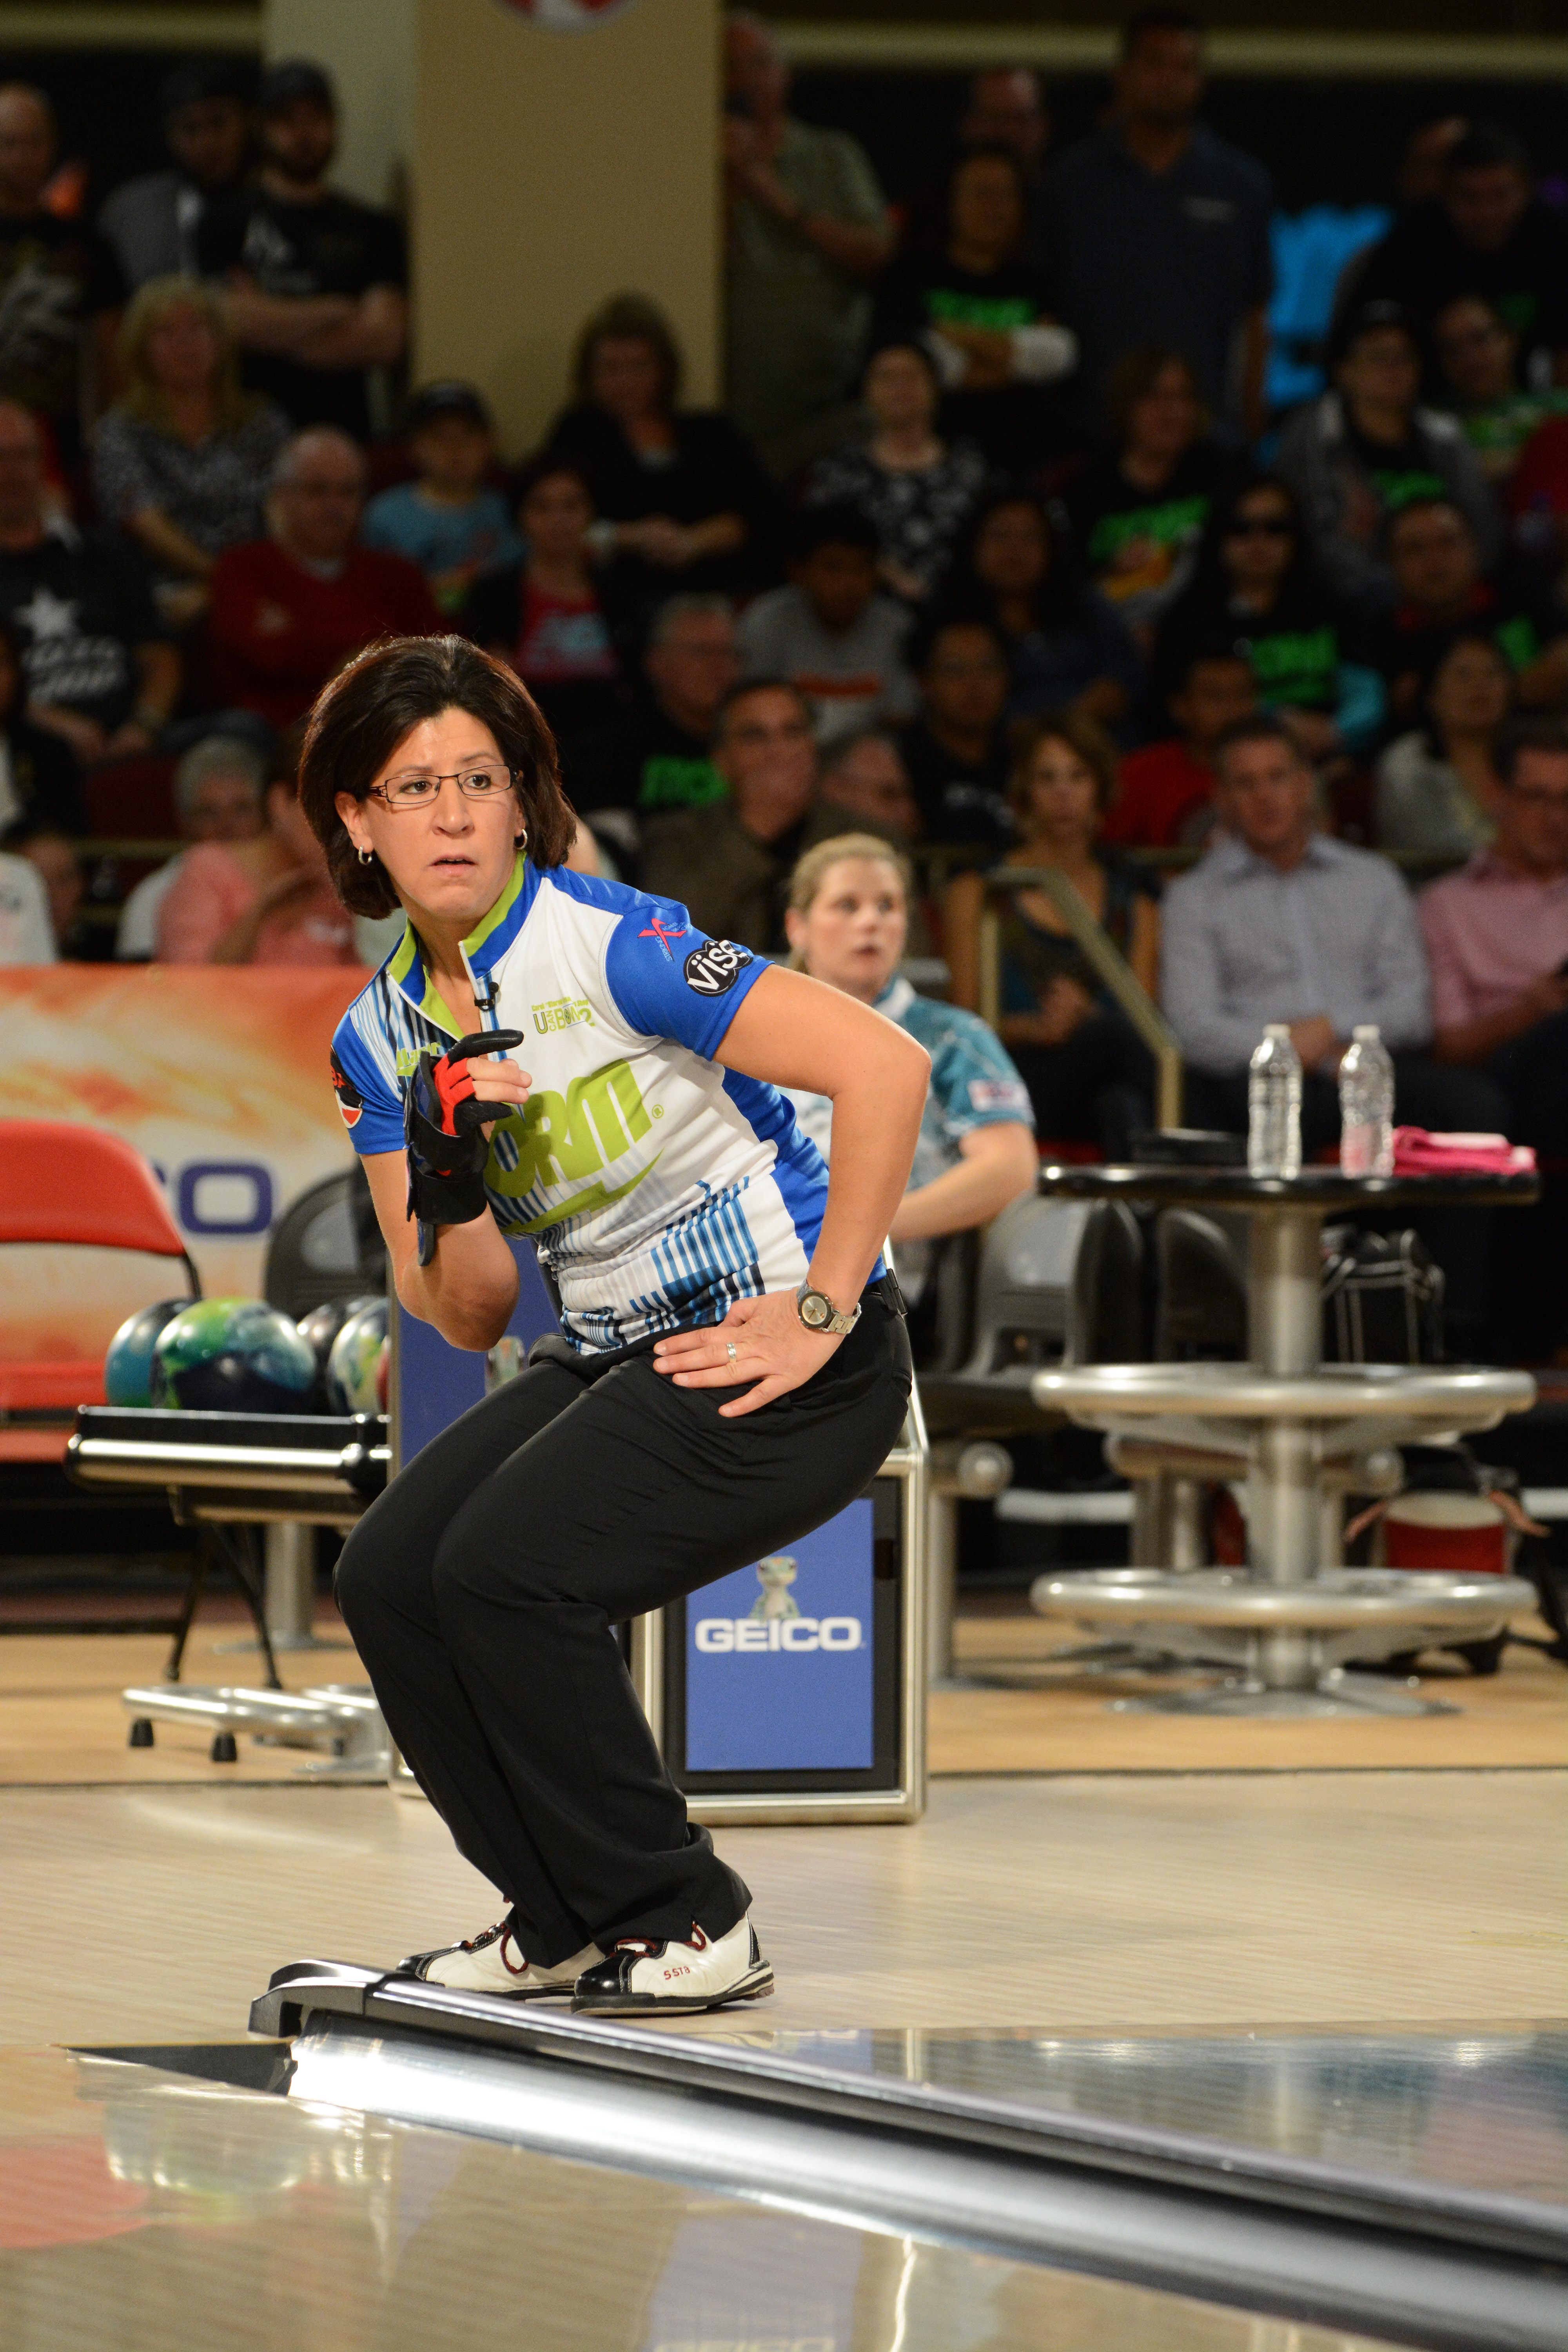 High 5 Gear Signs 10 Top Women Bowlers In Advance Of Pwba